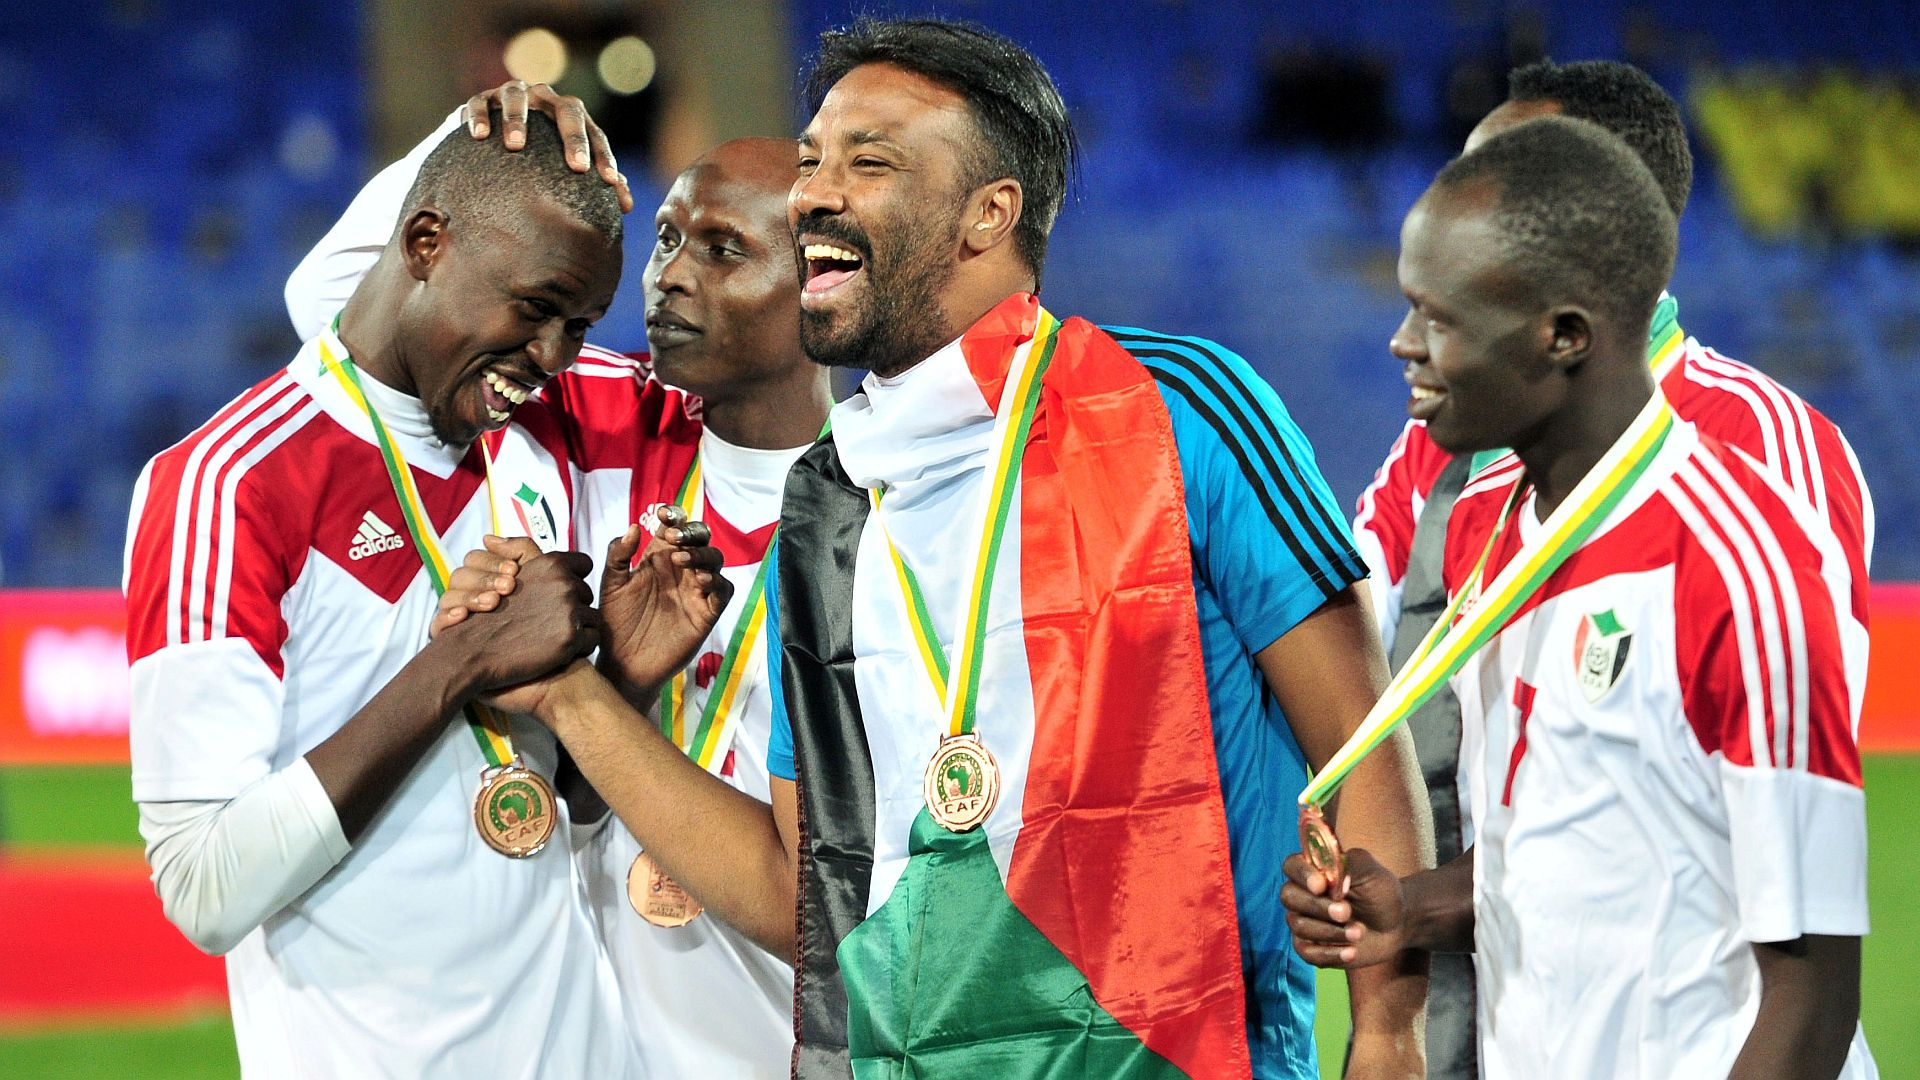 Sudan dispatch Libya on penalties to take CHAN bronze